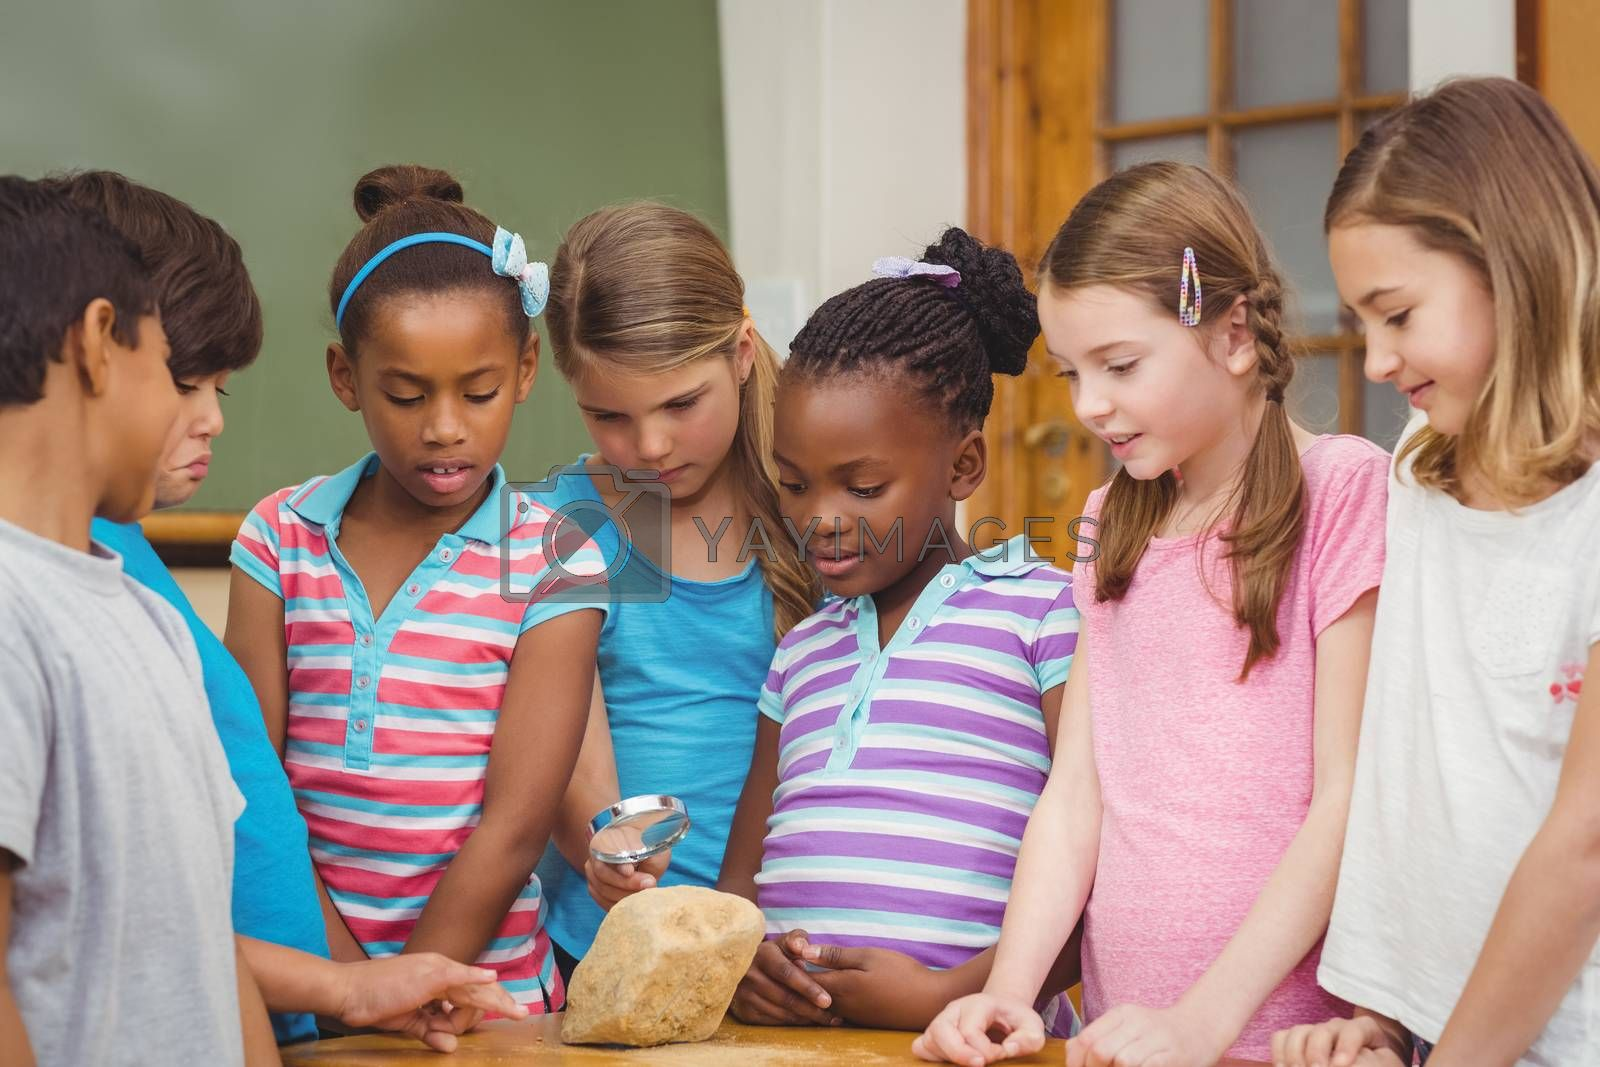 Pupils looking at rock with magnifying glass at the elementary school